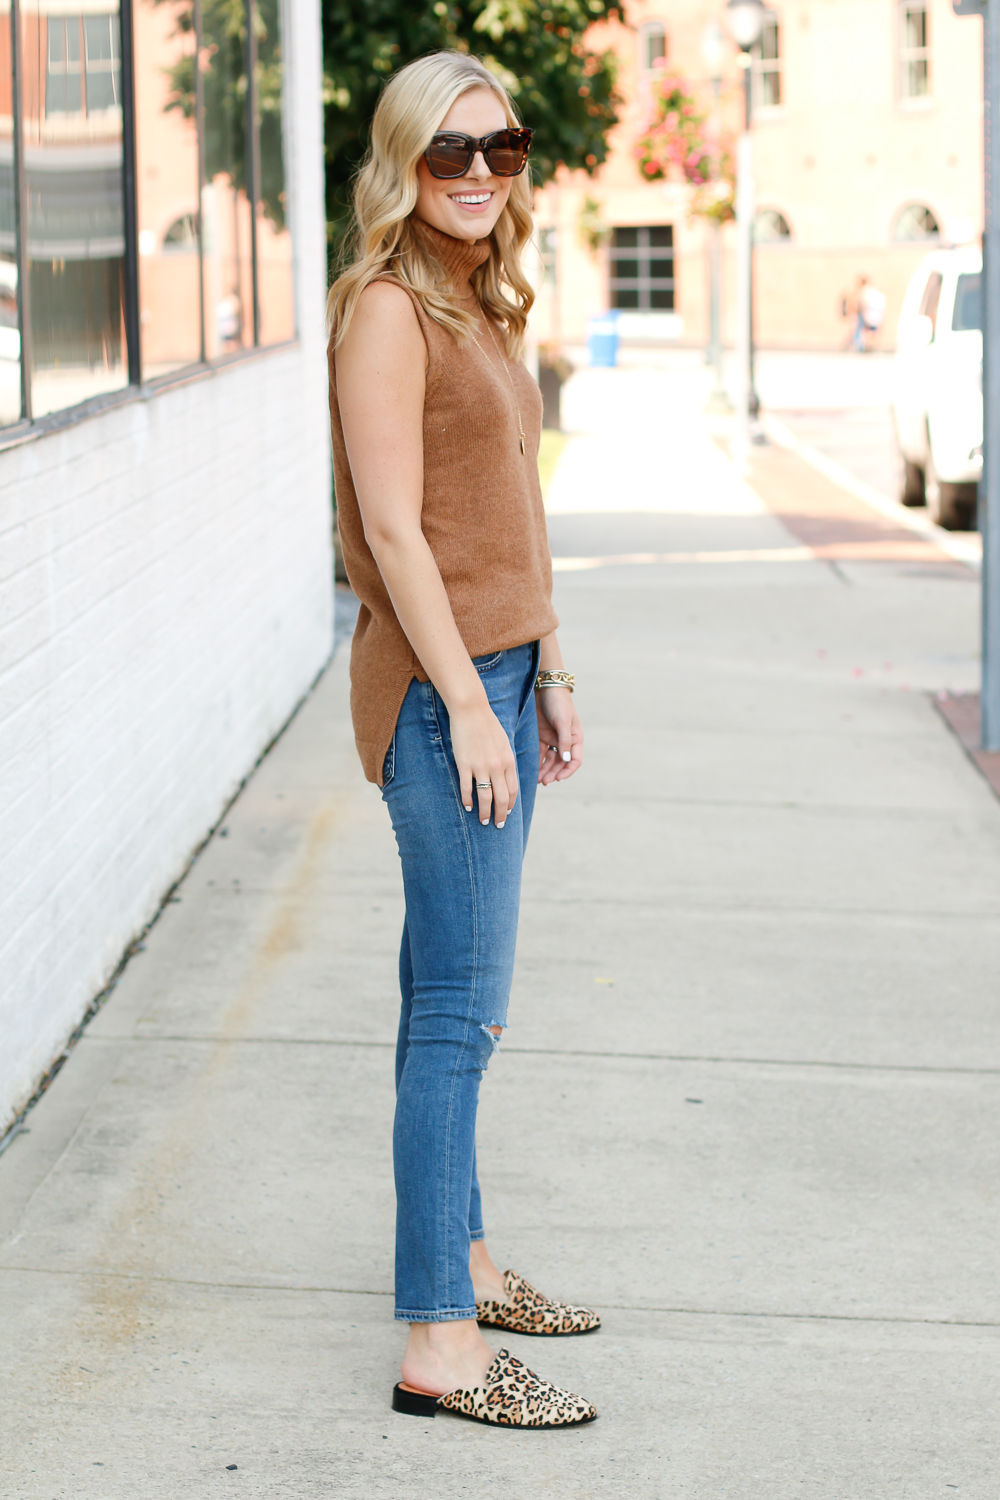 transitional outfit idea for fall